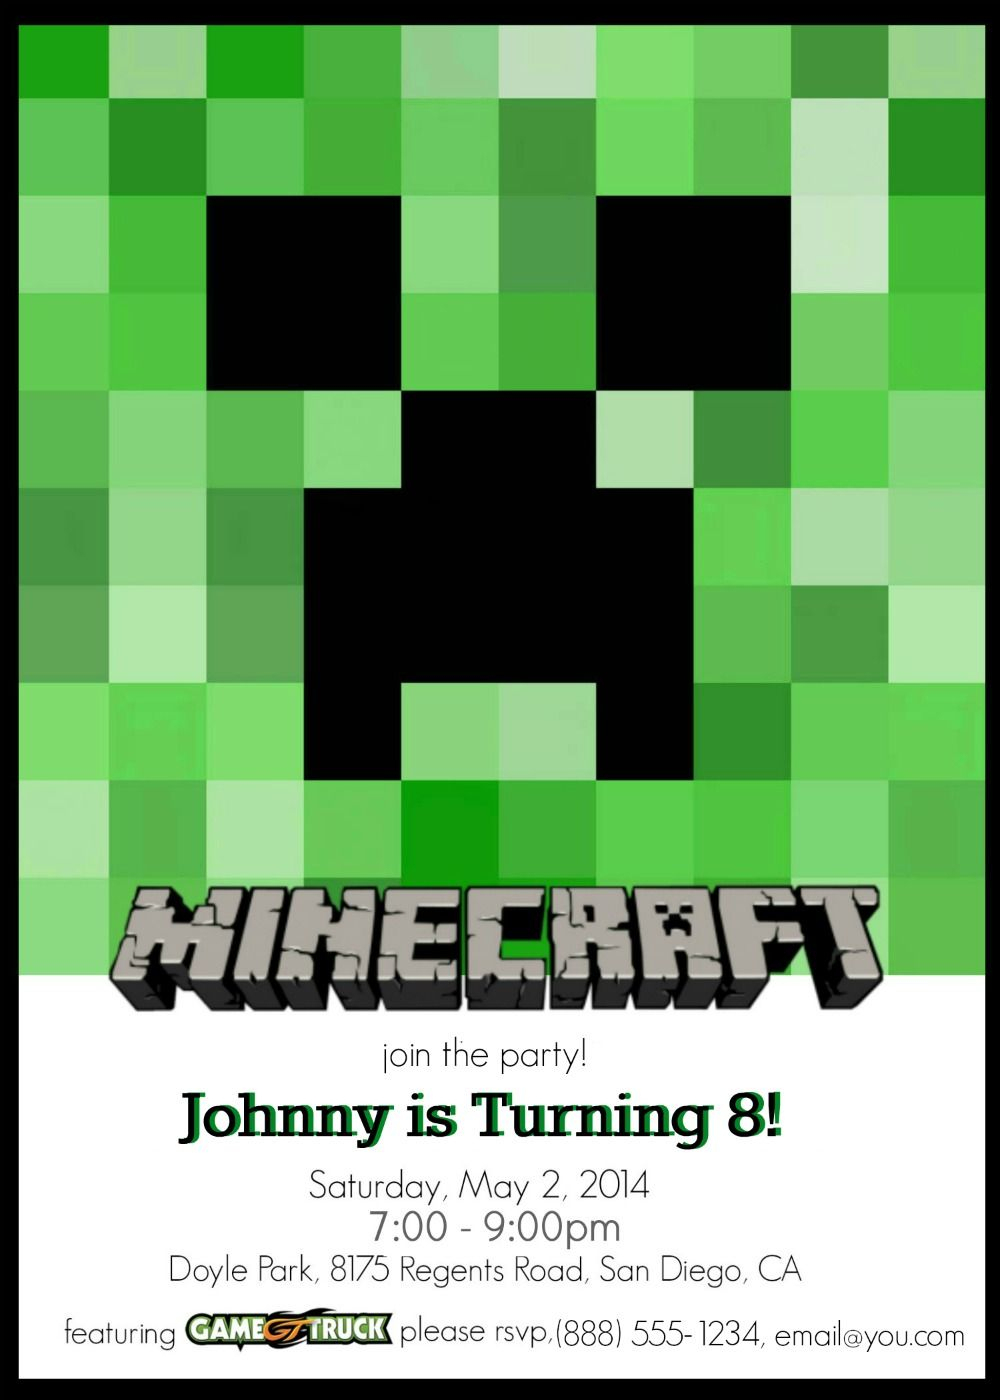 Make Your Own Custom Printable Minecraft Party Invitations | Nerd It - Make Your Own Birthday Party Invitations Free Printable